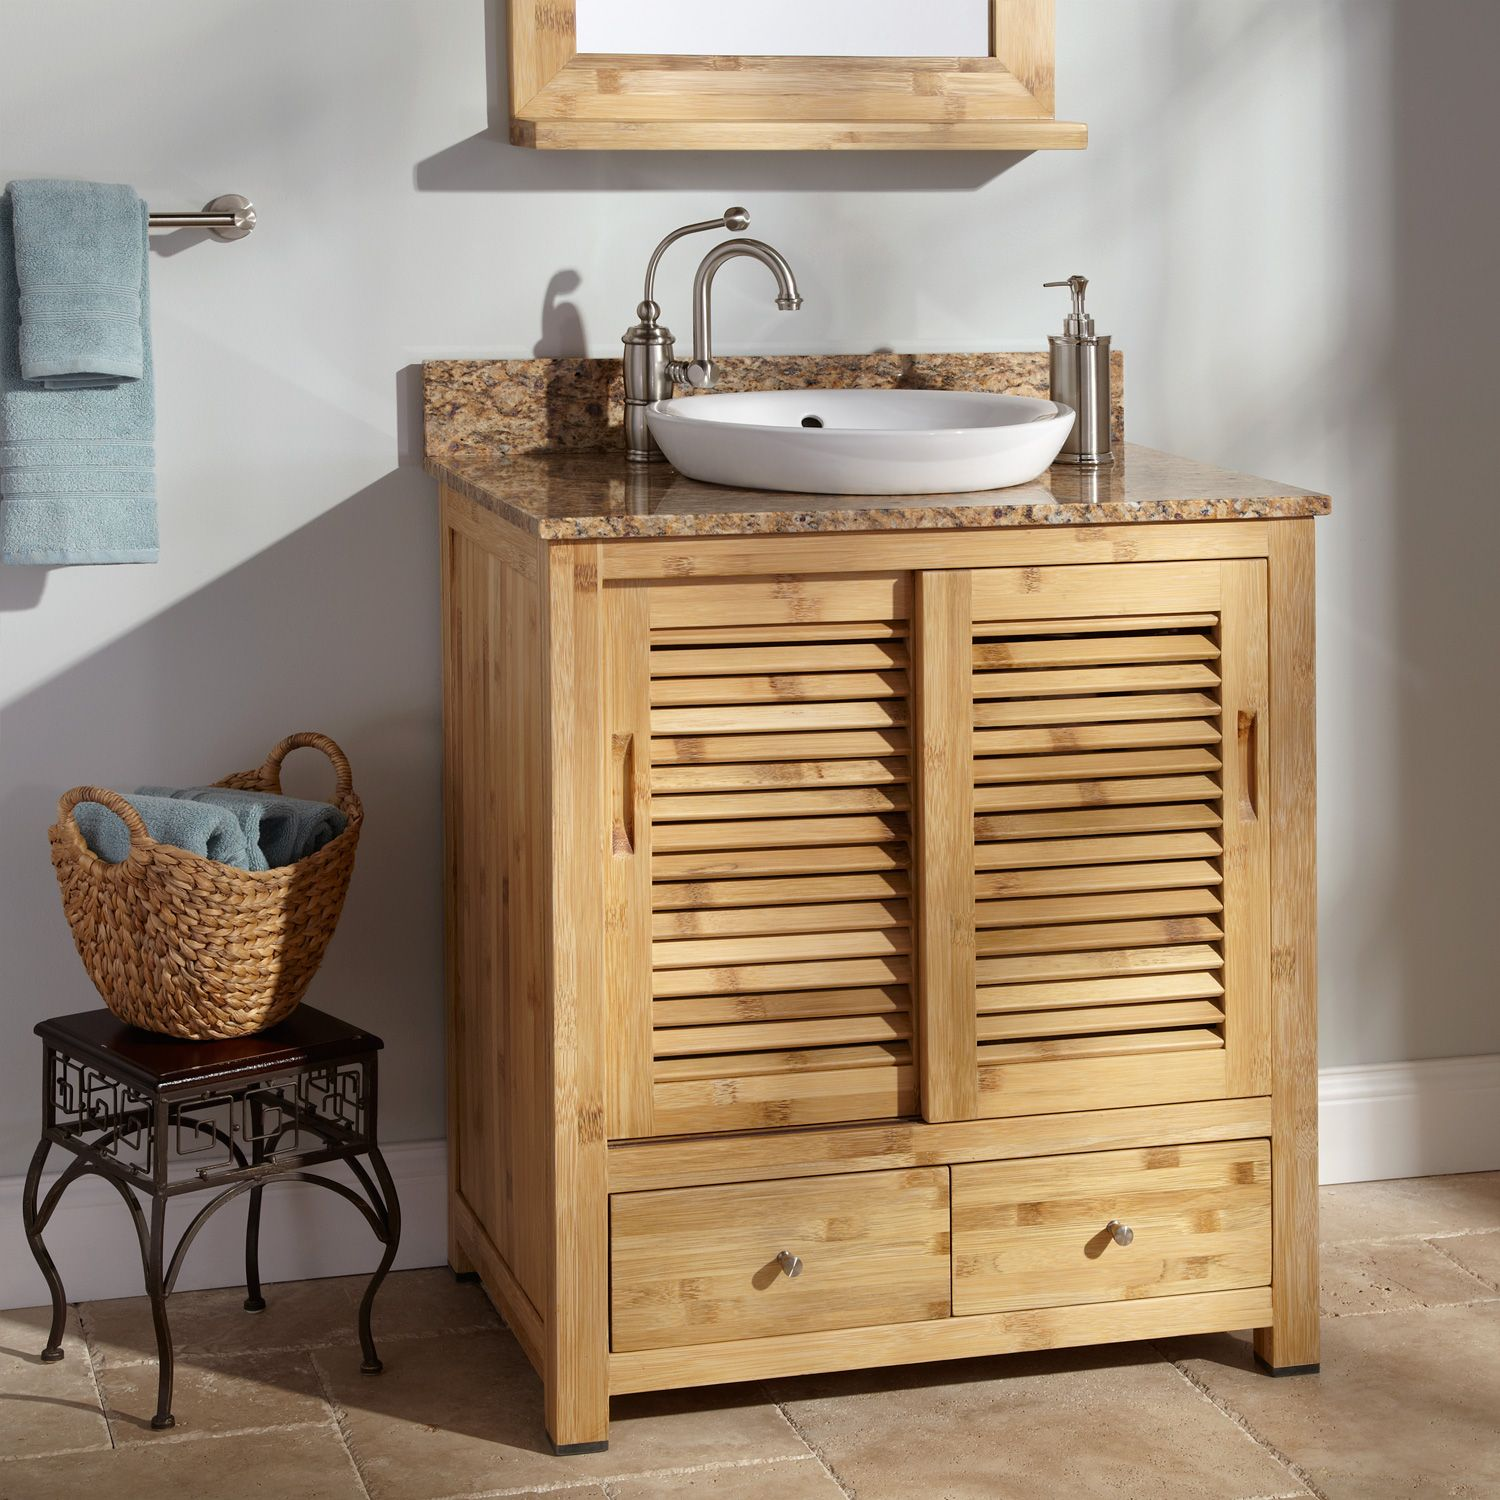 1000 images about Bathroom Ideas on Pinterest Cottage bathrooms  Small Bathroom Sink Cabinet. Small Bathroom Sinks And Cabinets